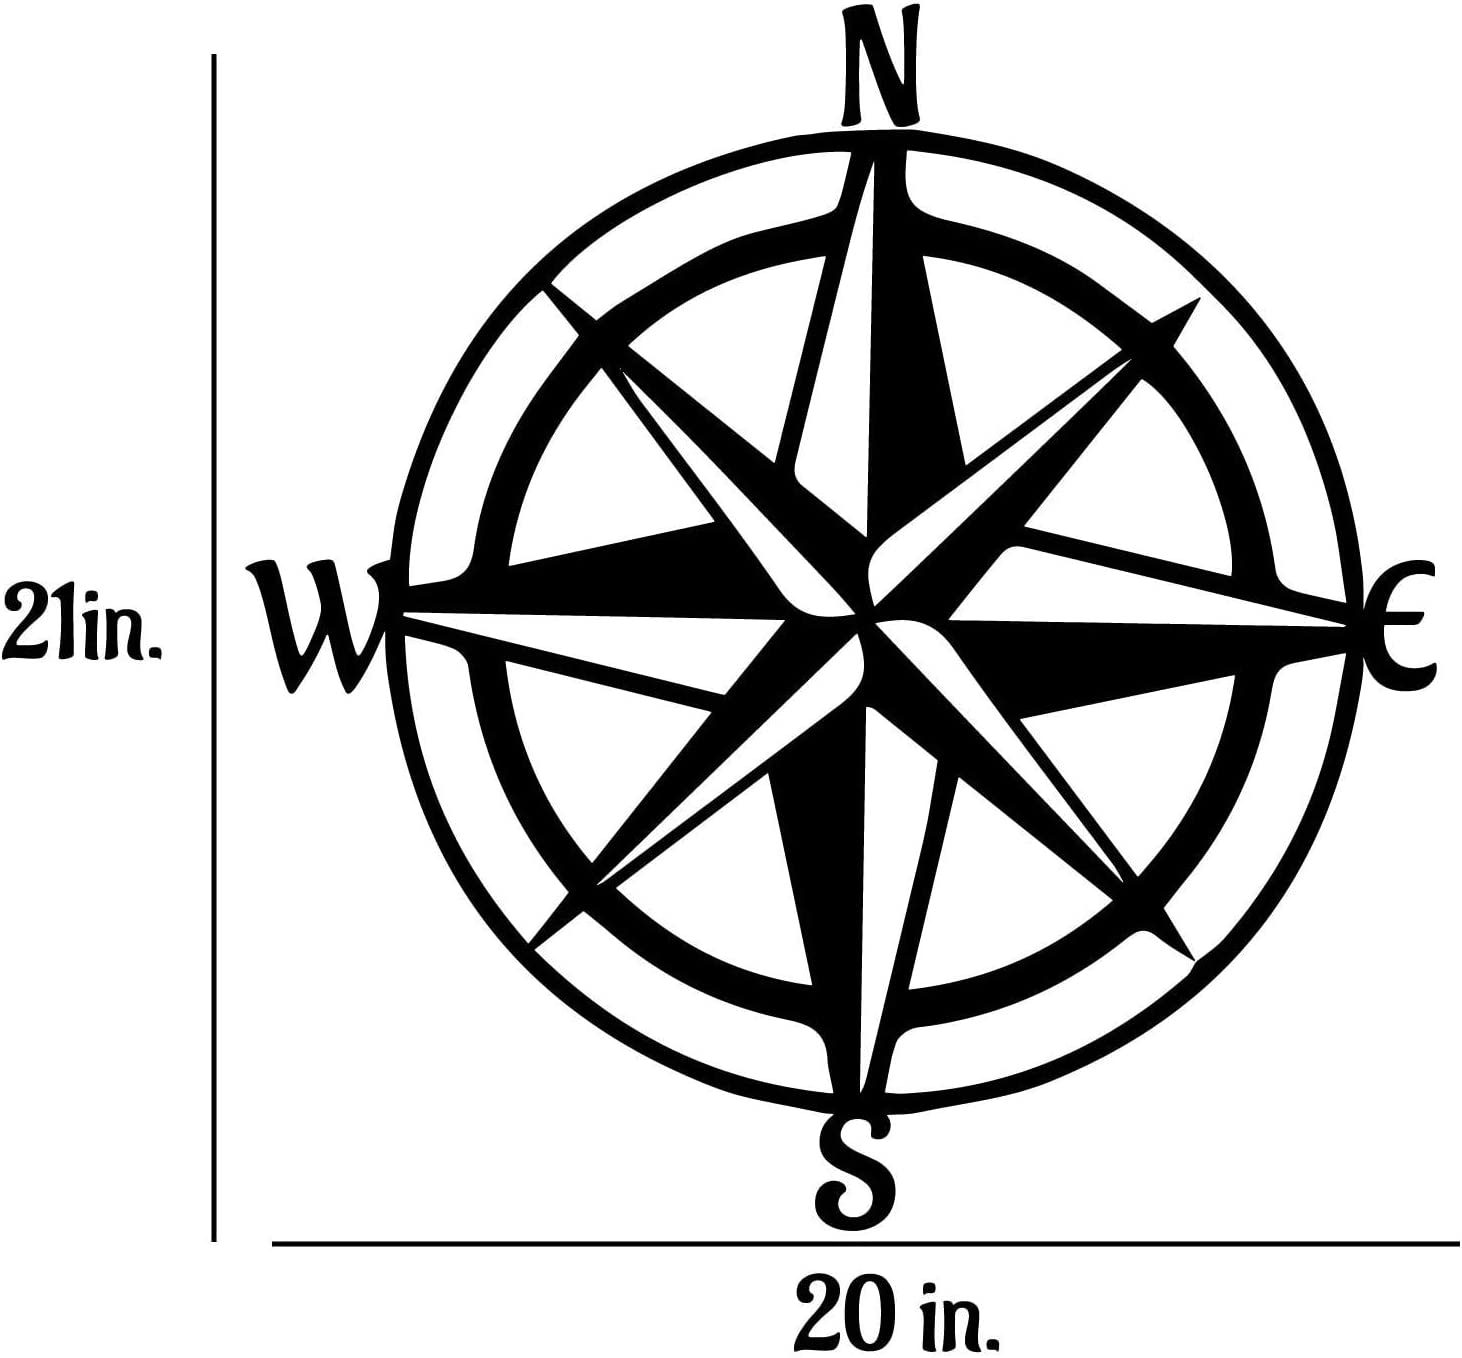 Removable Vinyl Wall Decal compliments Seaside Beach Decor in your home or a vacation home Nautical Compass Rose Decal